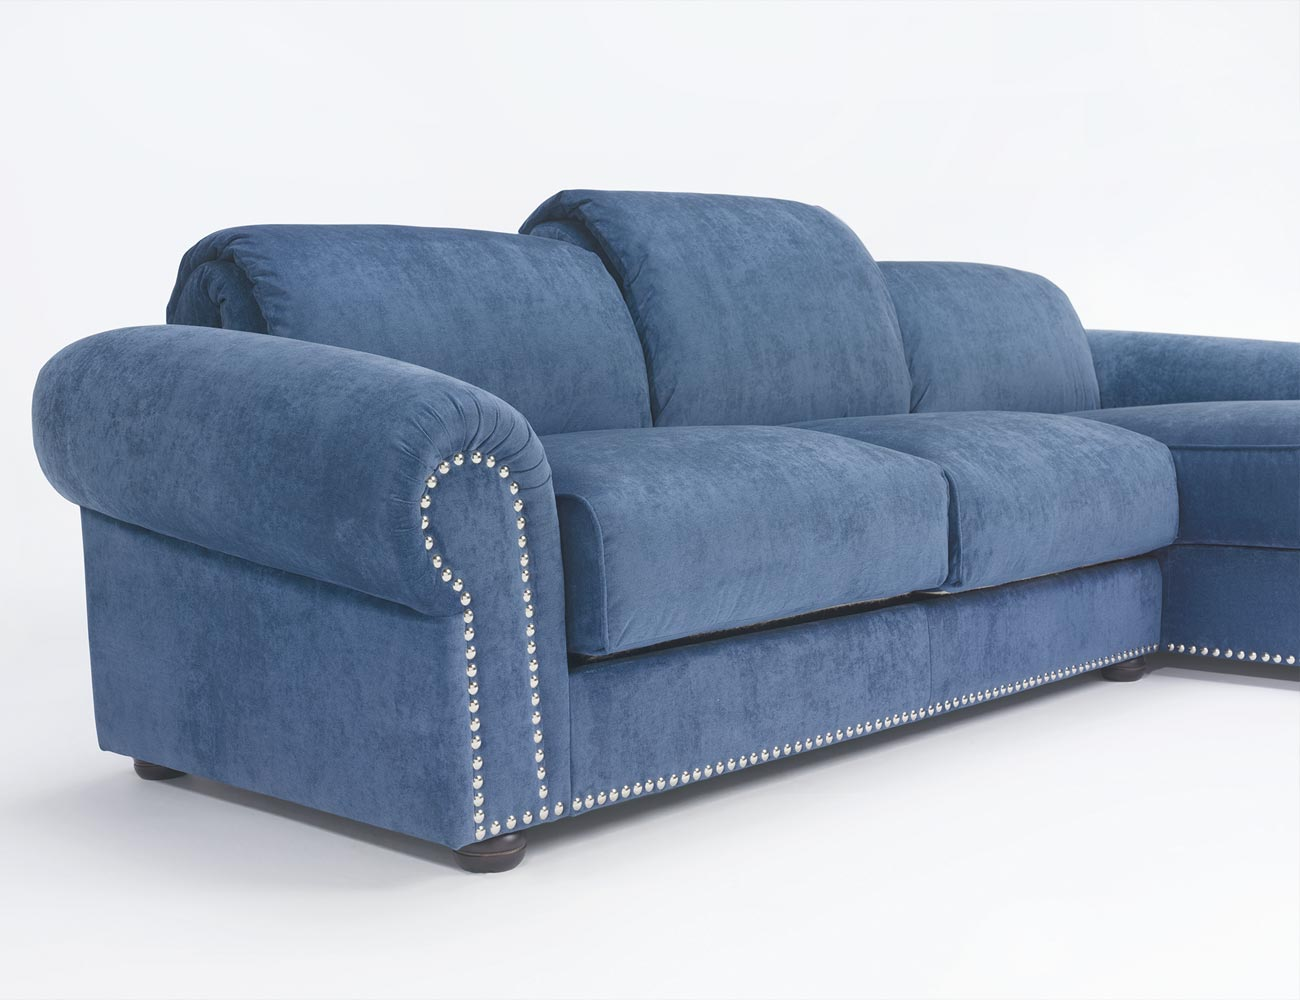 Sofa chaiselongue gran lujo decorativo azul 120